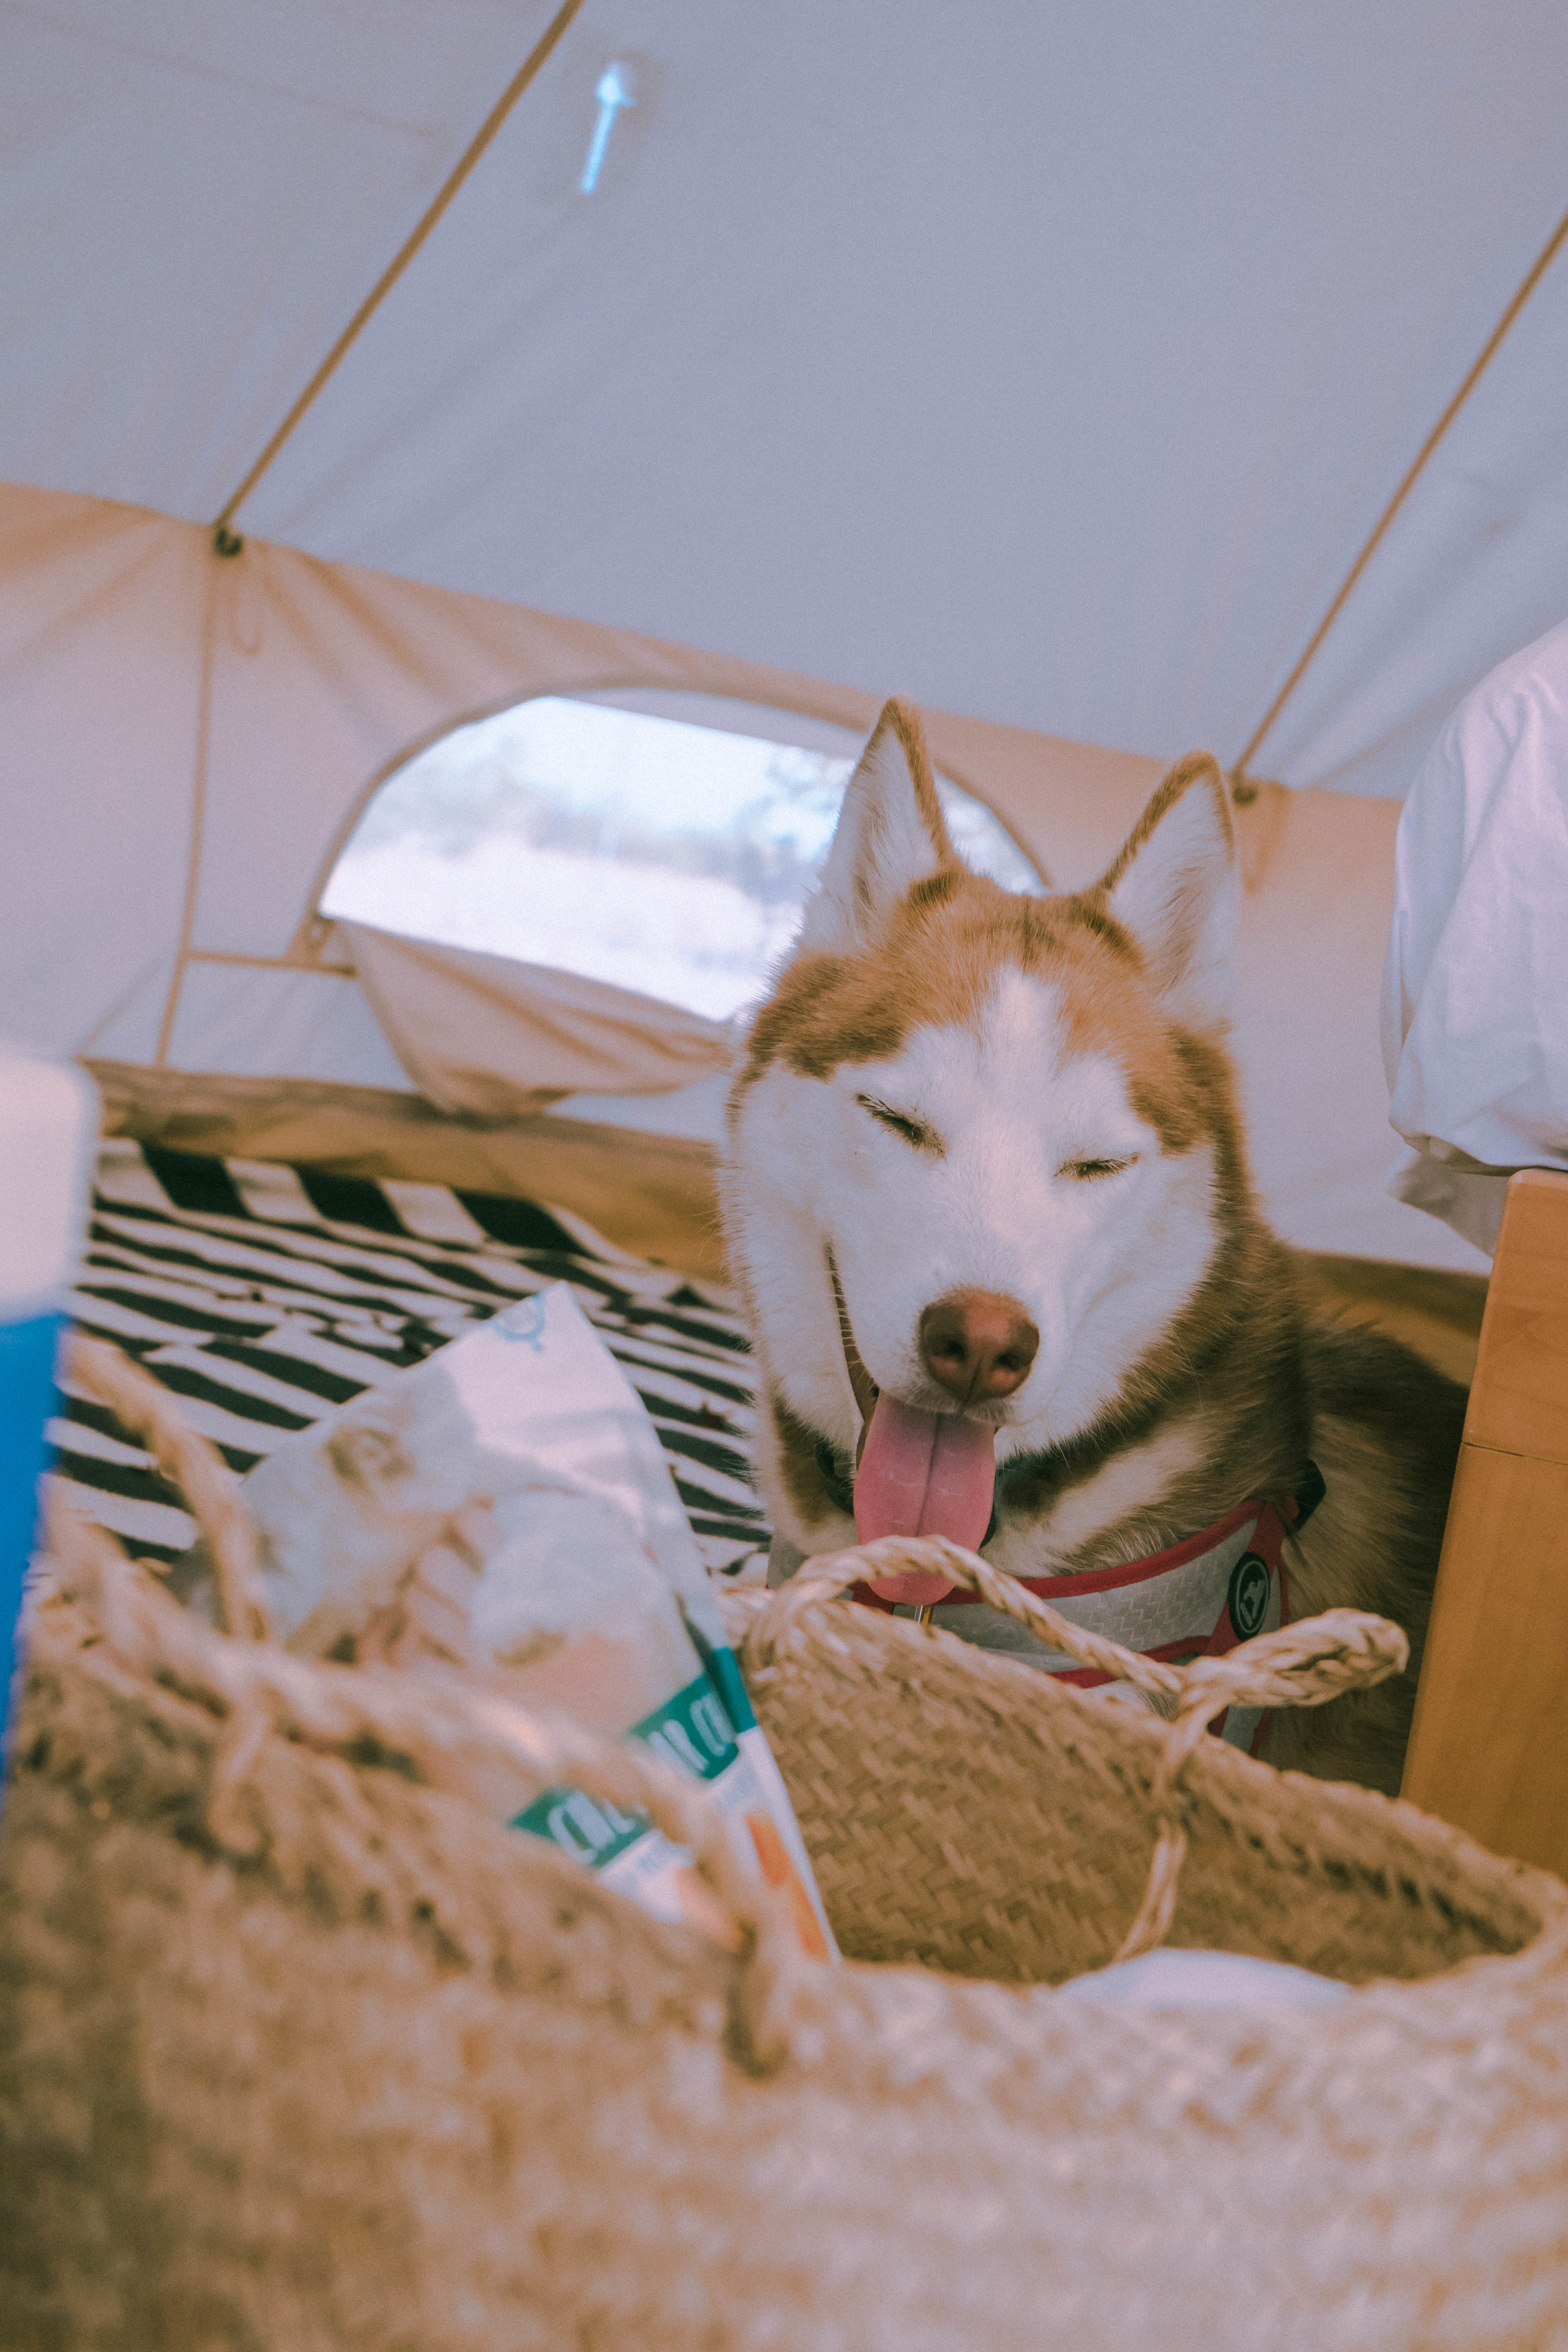 Max was very cozy sleeping in here during the cold desert nights